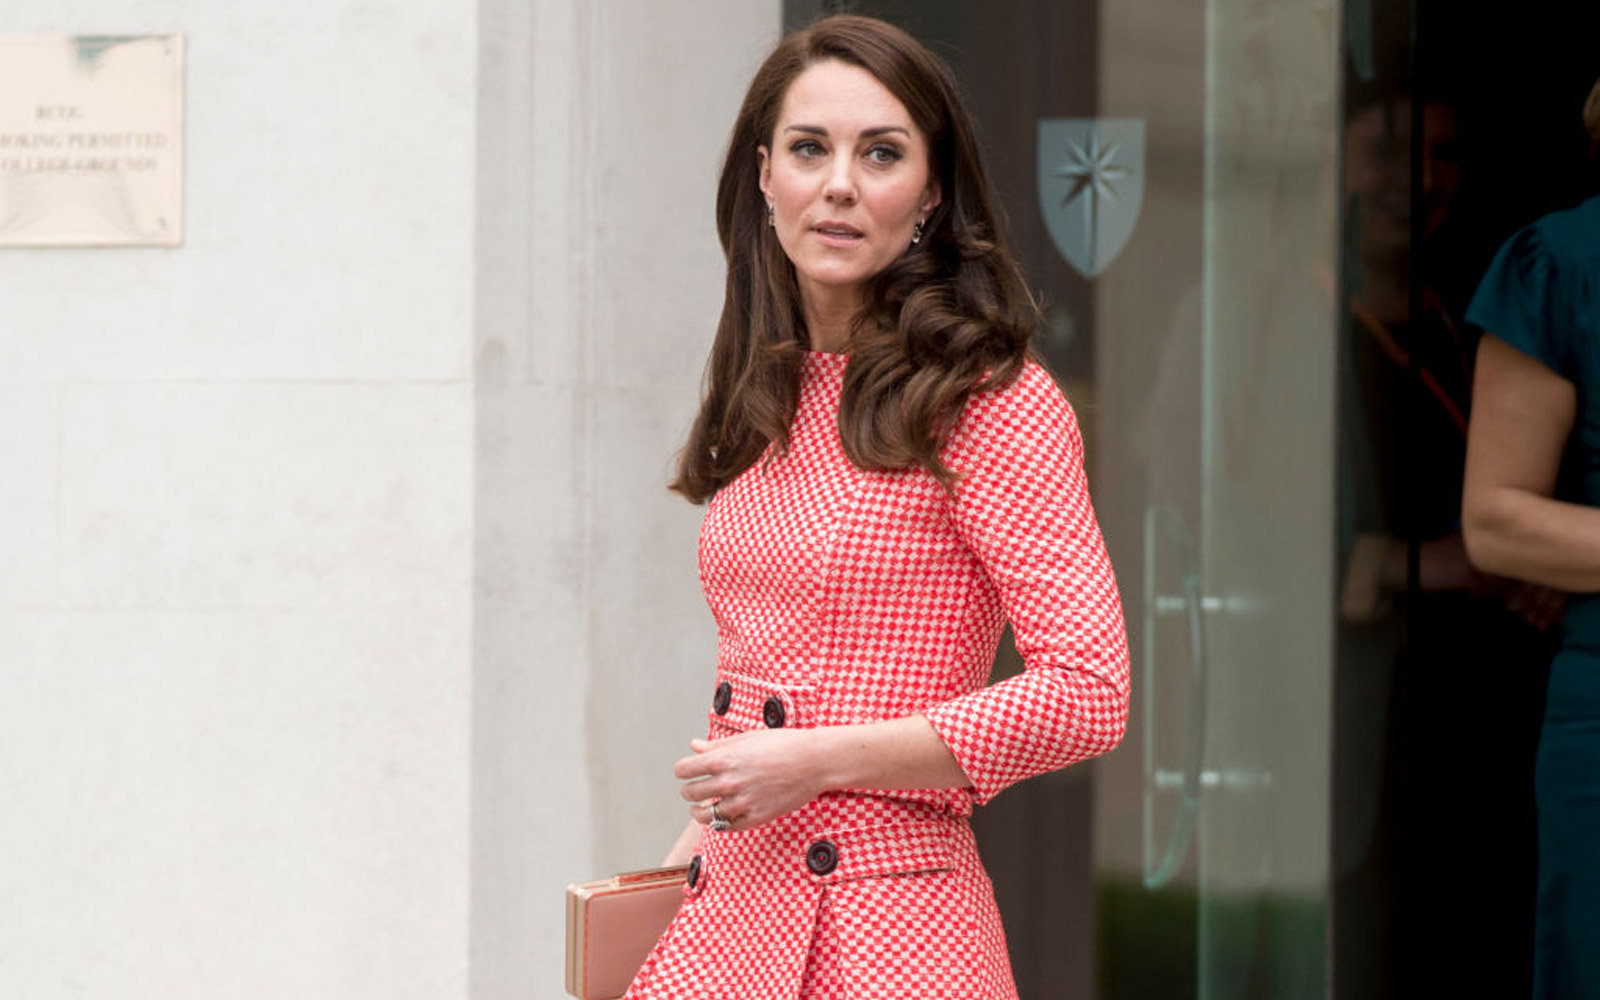 LONDON, ENGLAND - MARCH 23:  Catherine, Duchess of Cambridge leaves after attending the launch of maternal mental health films ahead of mother's day at Royal College of Obstetricians and Gynaecologists on March 23, 2017 in London, England.  The educationa